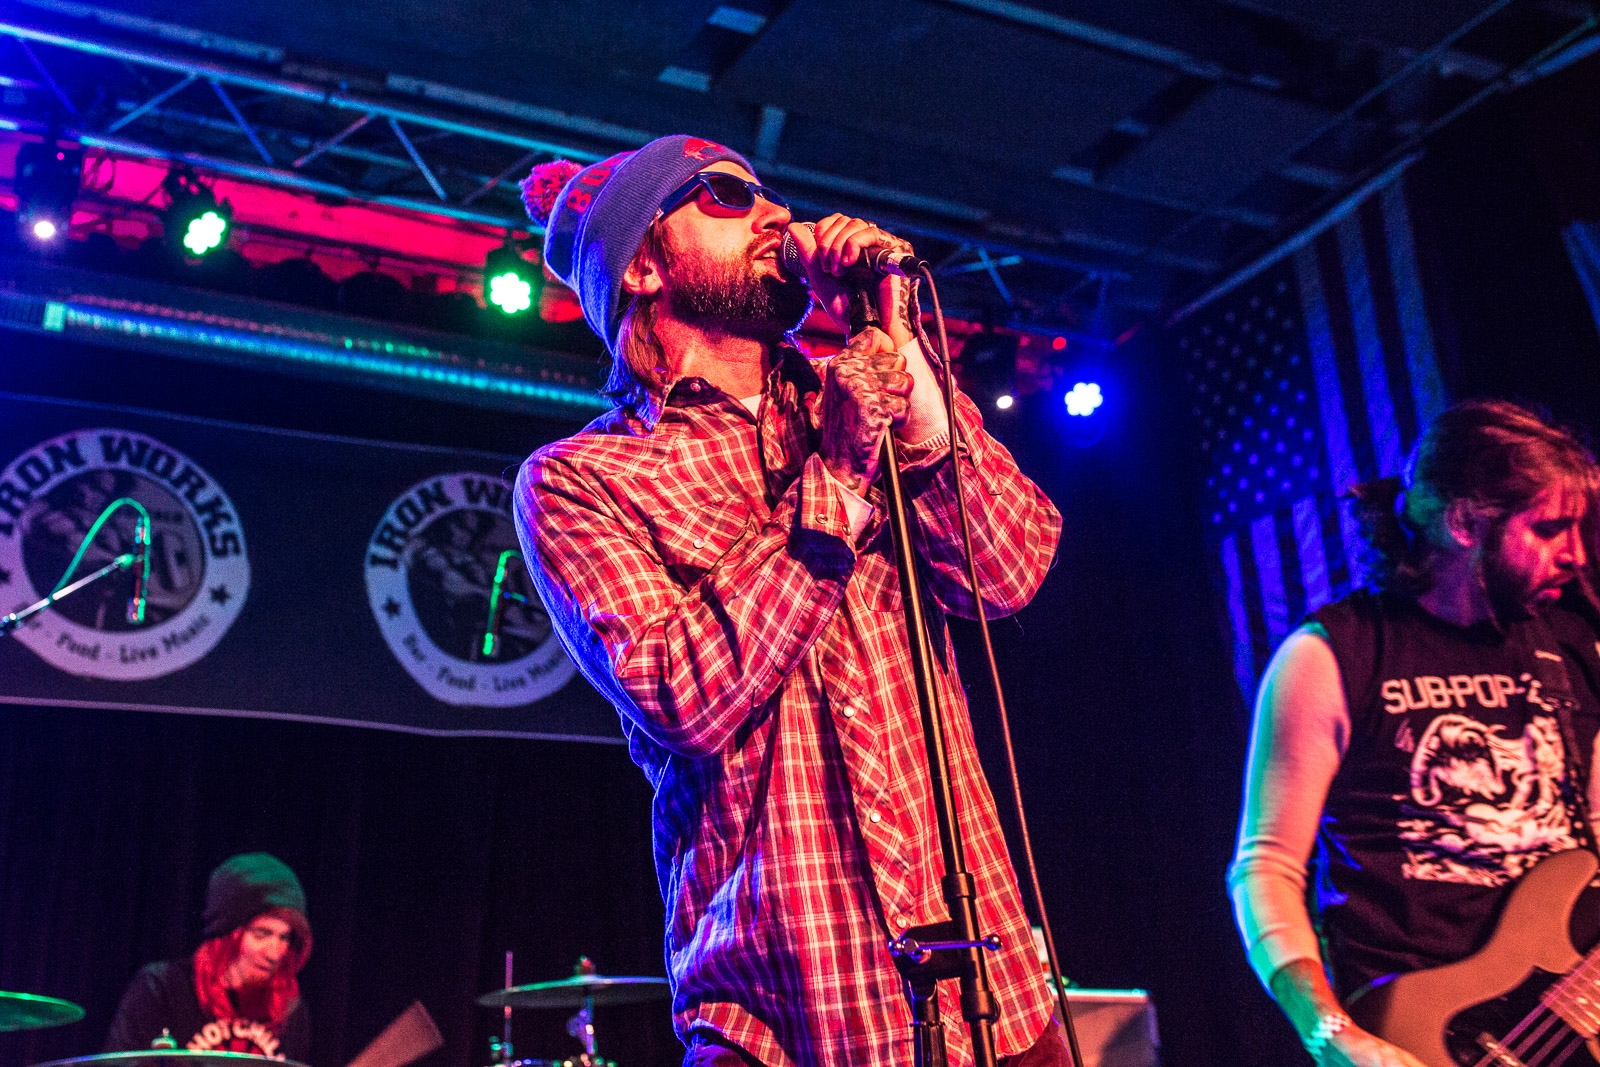 Keith Buckley and Soul Patch will perform at the Tralf Music Hall before heading to Expo Market for an after-party. (Chuck Alaimo/Special to the News)